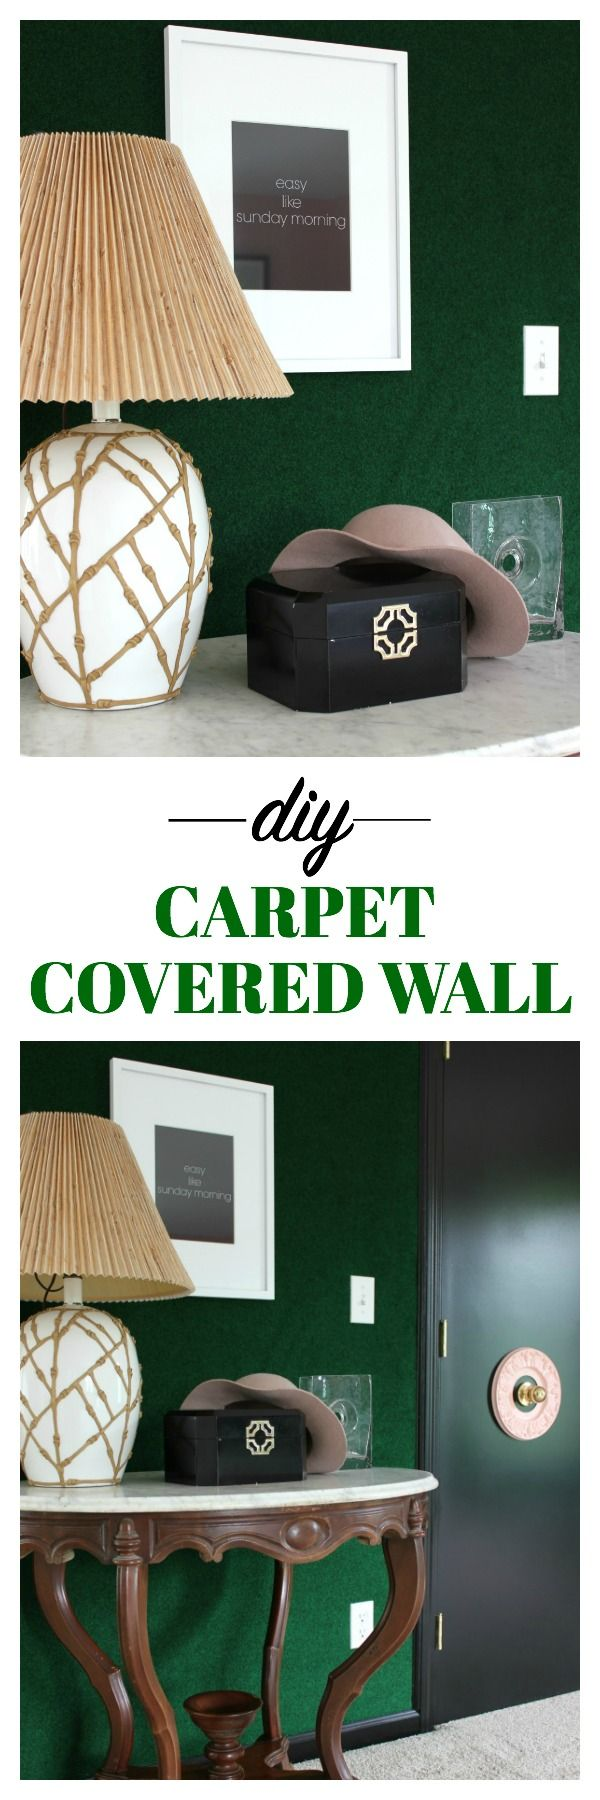 What a great idea! The carpet brings a whole other element to the space! Easy and cheap to do as well! DIY Green Carpet Covered Wall | Palm Beach Design Style | Palm Springs Design Style | Astroturf Covered Wall